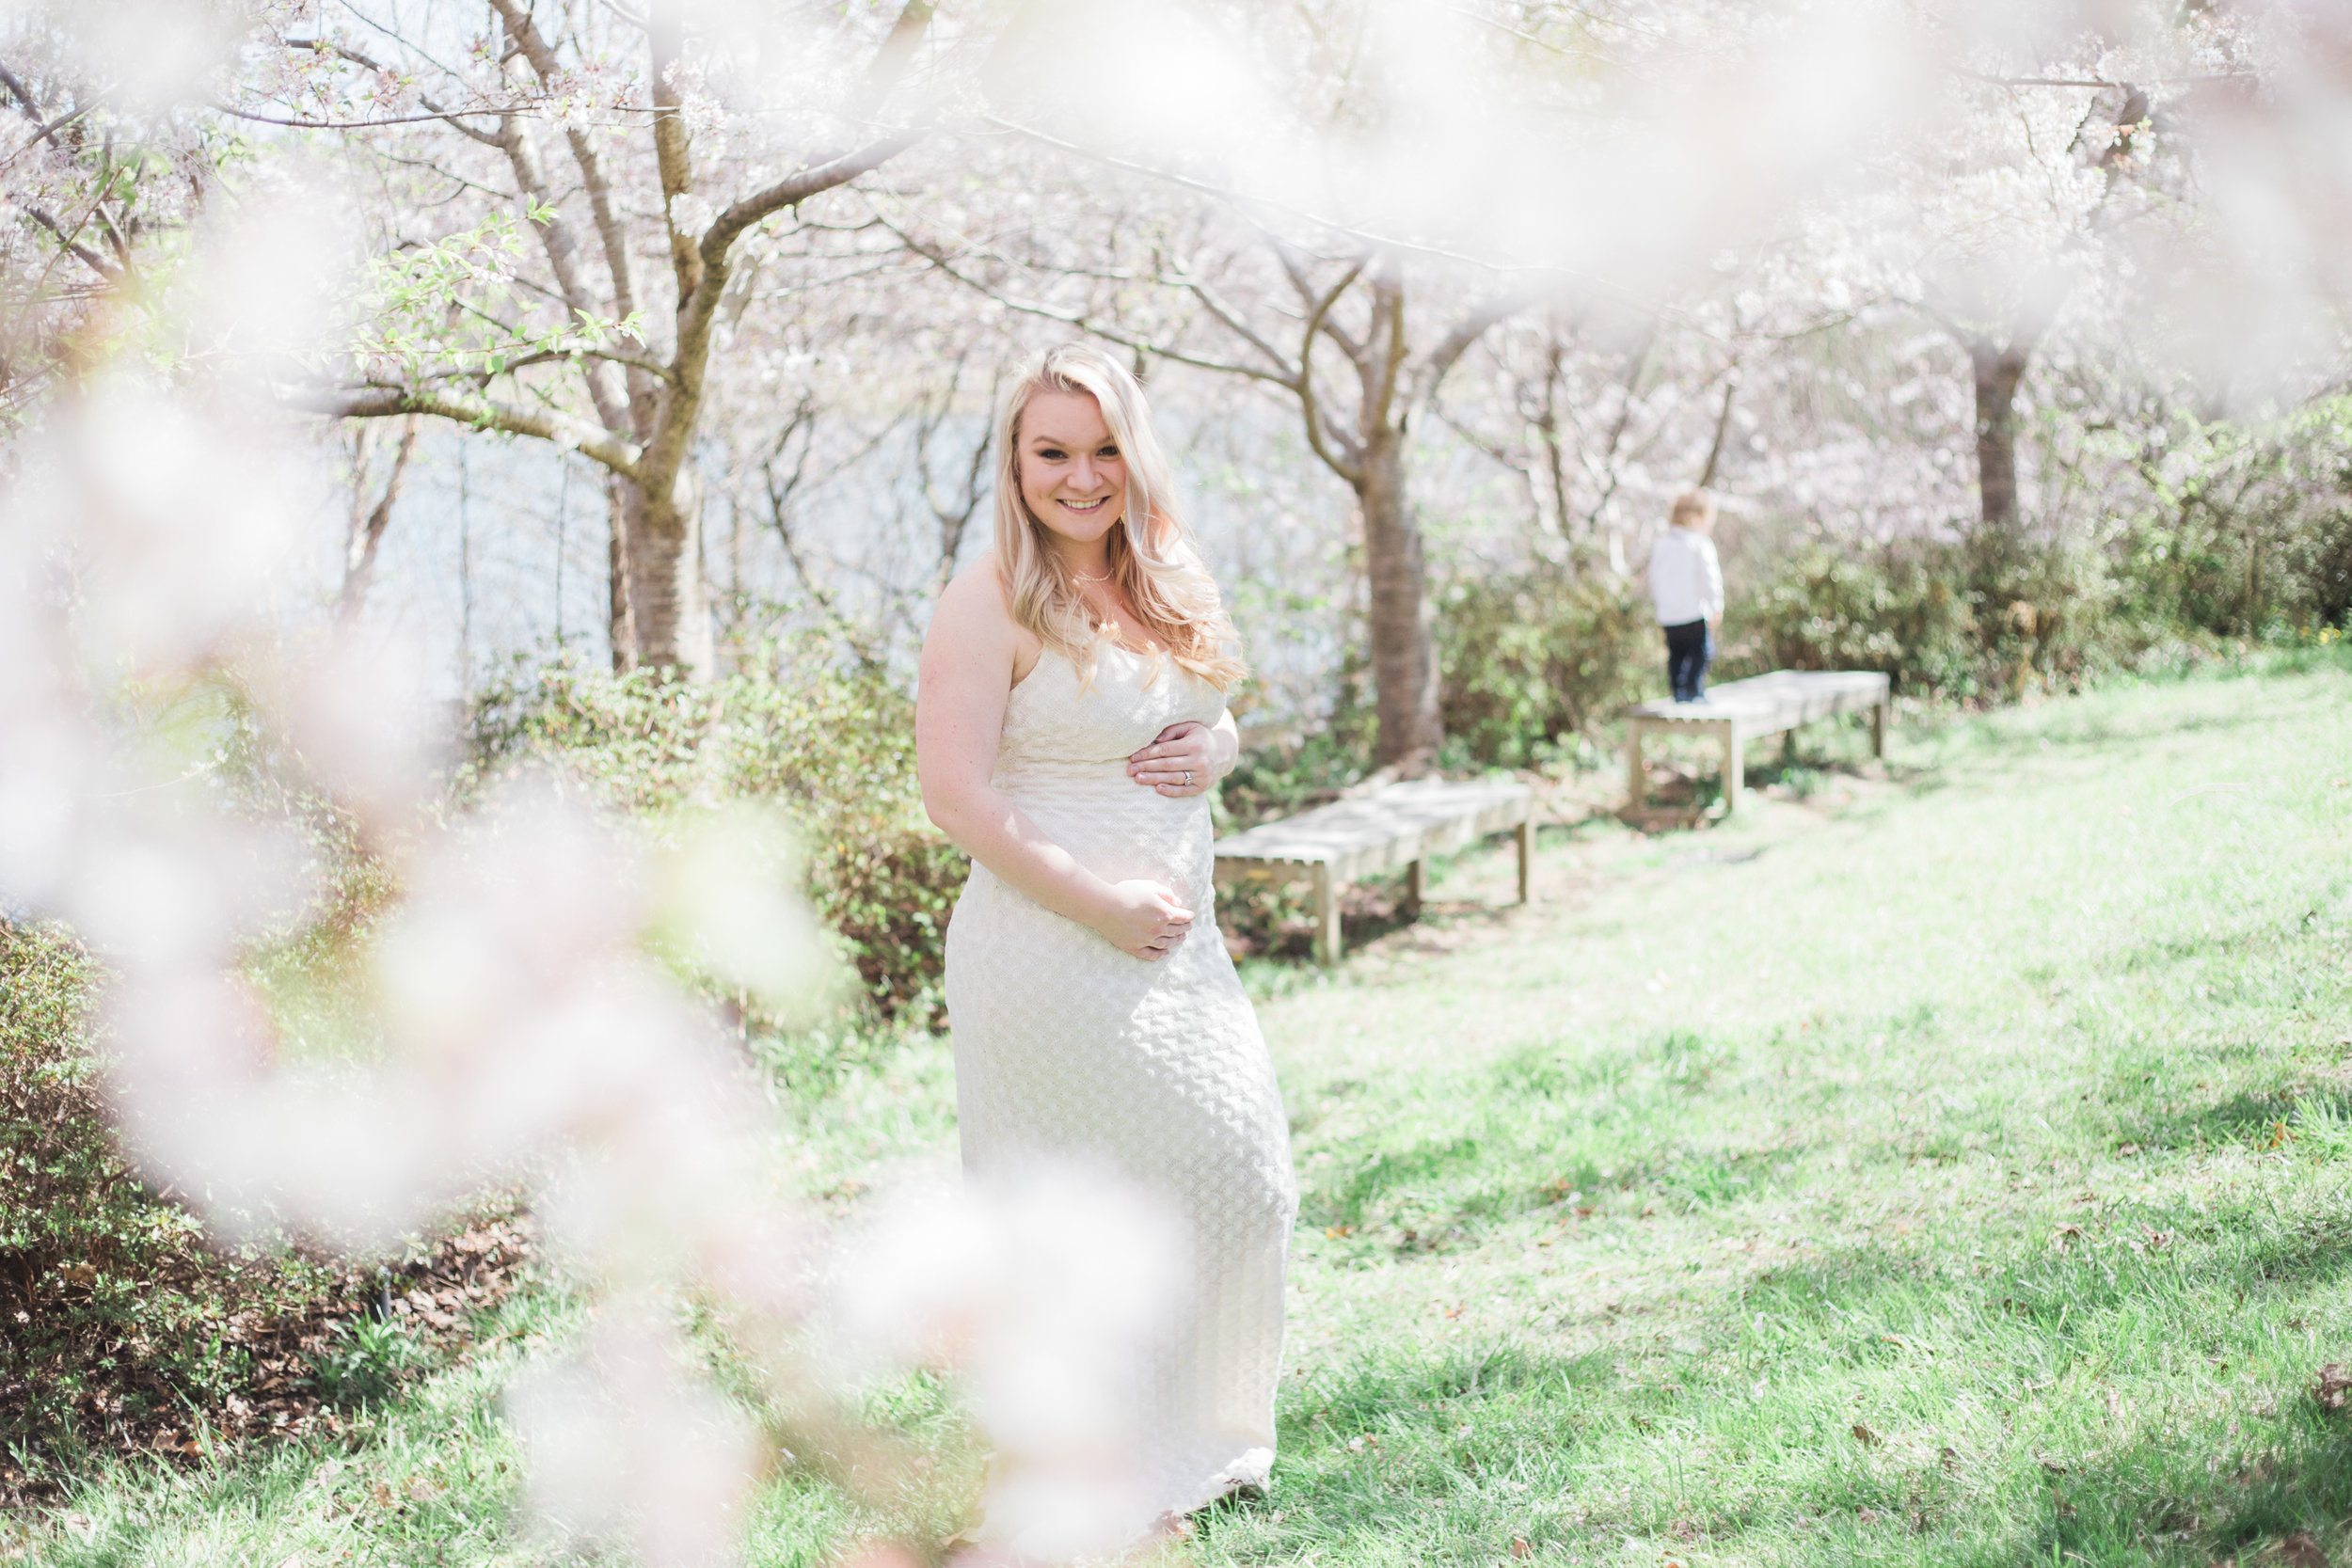 MJ Mendoza Photography - Virginia Wedding & Lifestyle Photographer